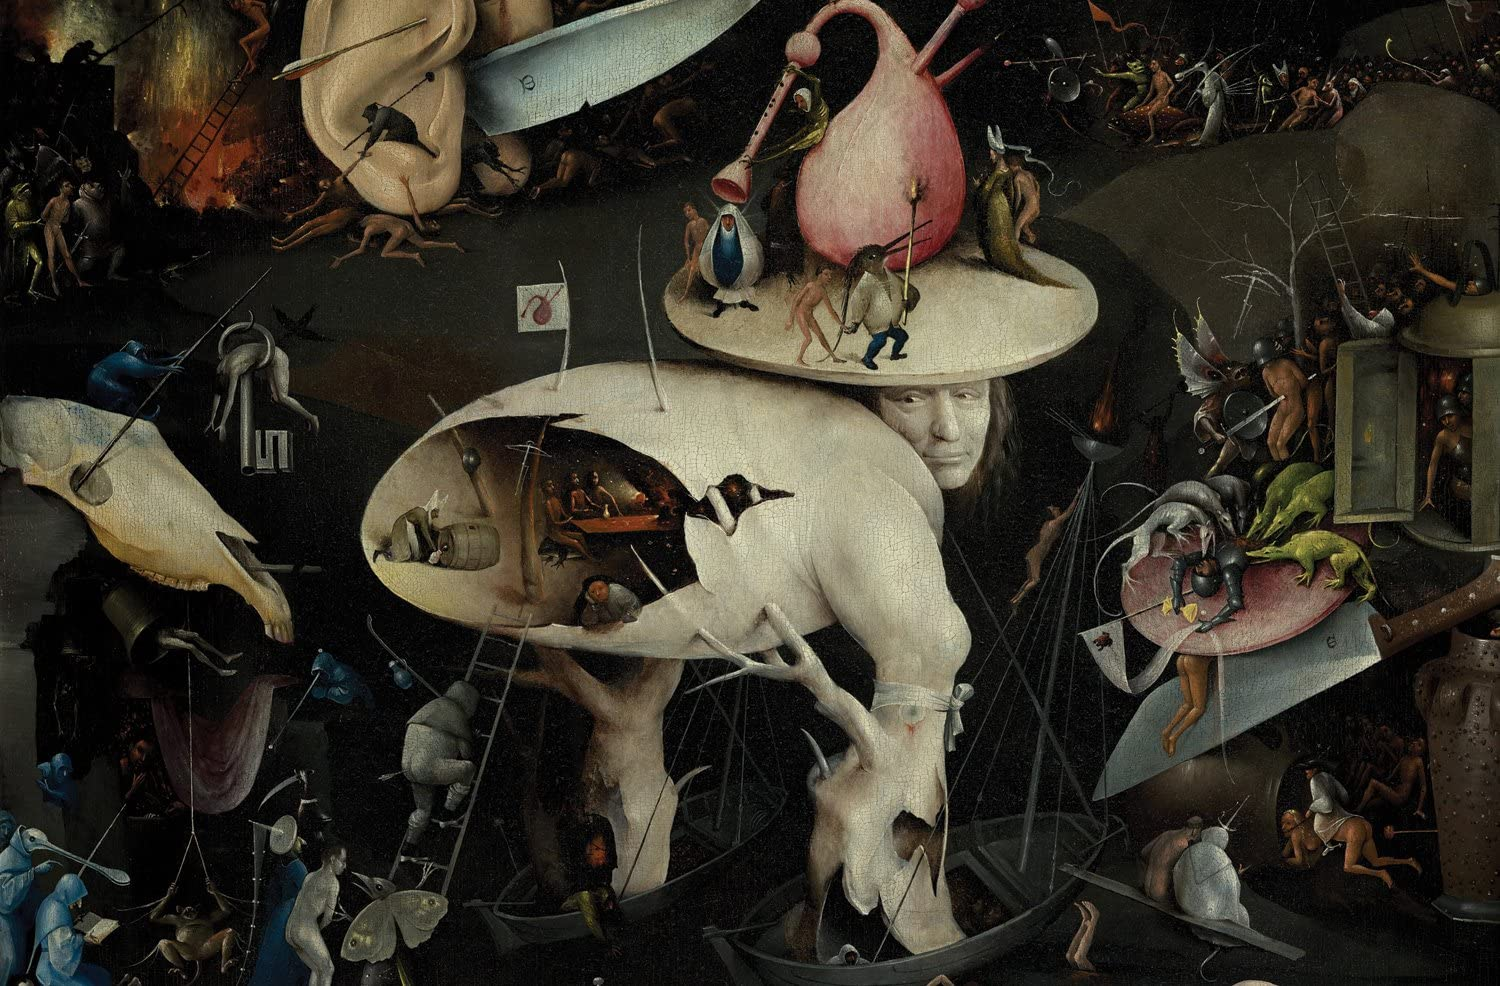 JP London Mural The Garden of Earthly Delights Painting at 3 Wide by 2 Feet high SPMUR2288 Fully Removable Peel and Stick Wall Art